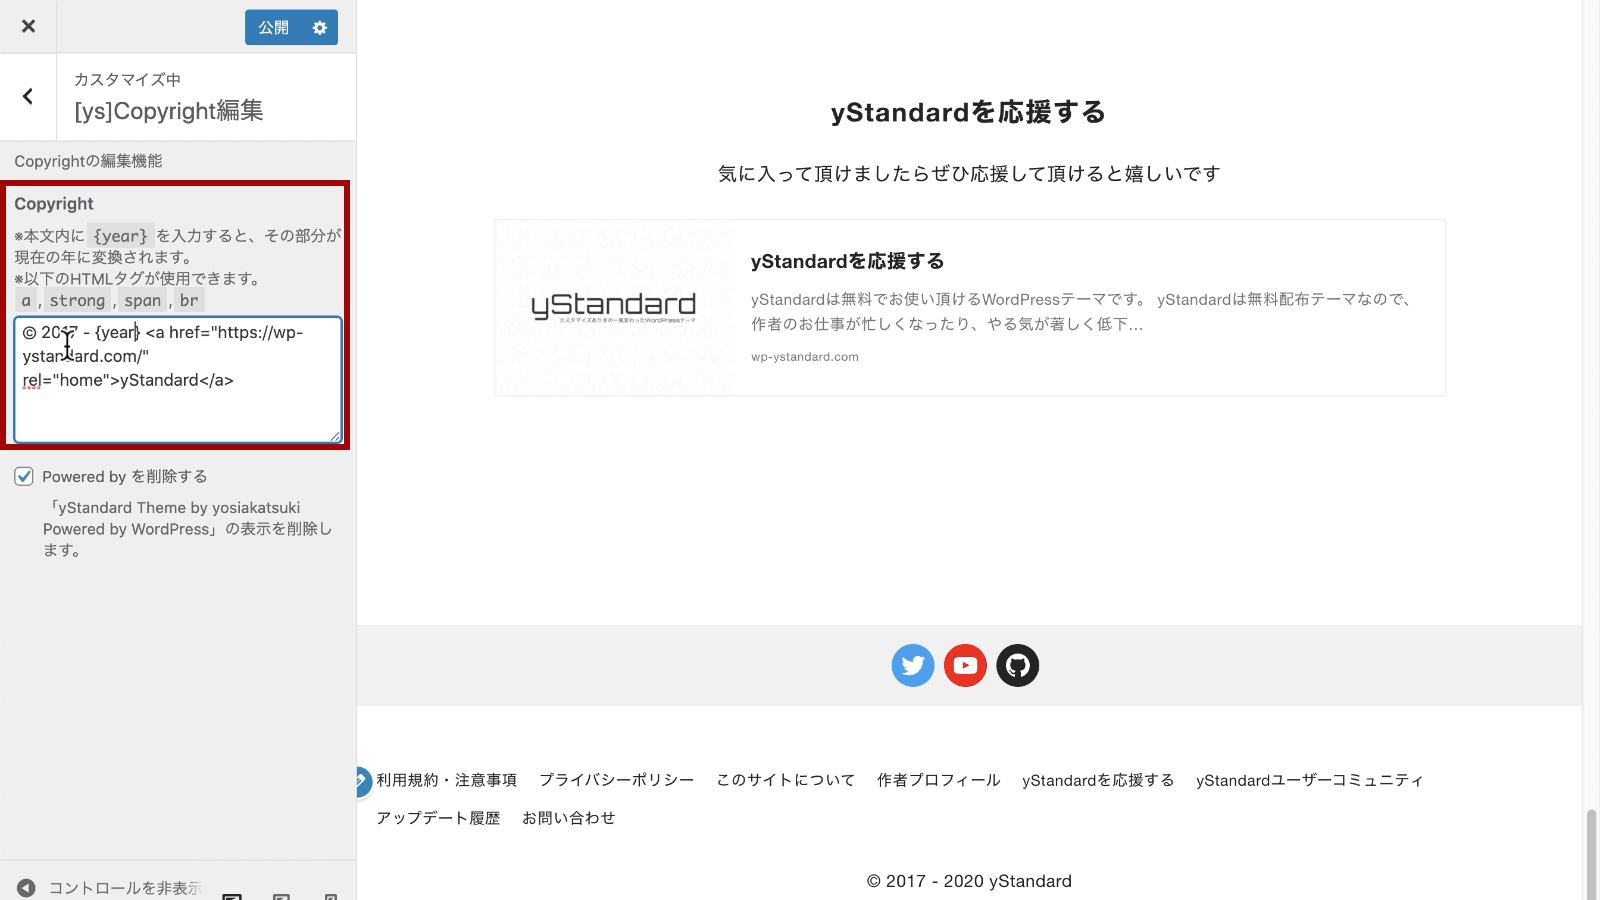 「yStandard Copyright Customizer」の機能例